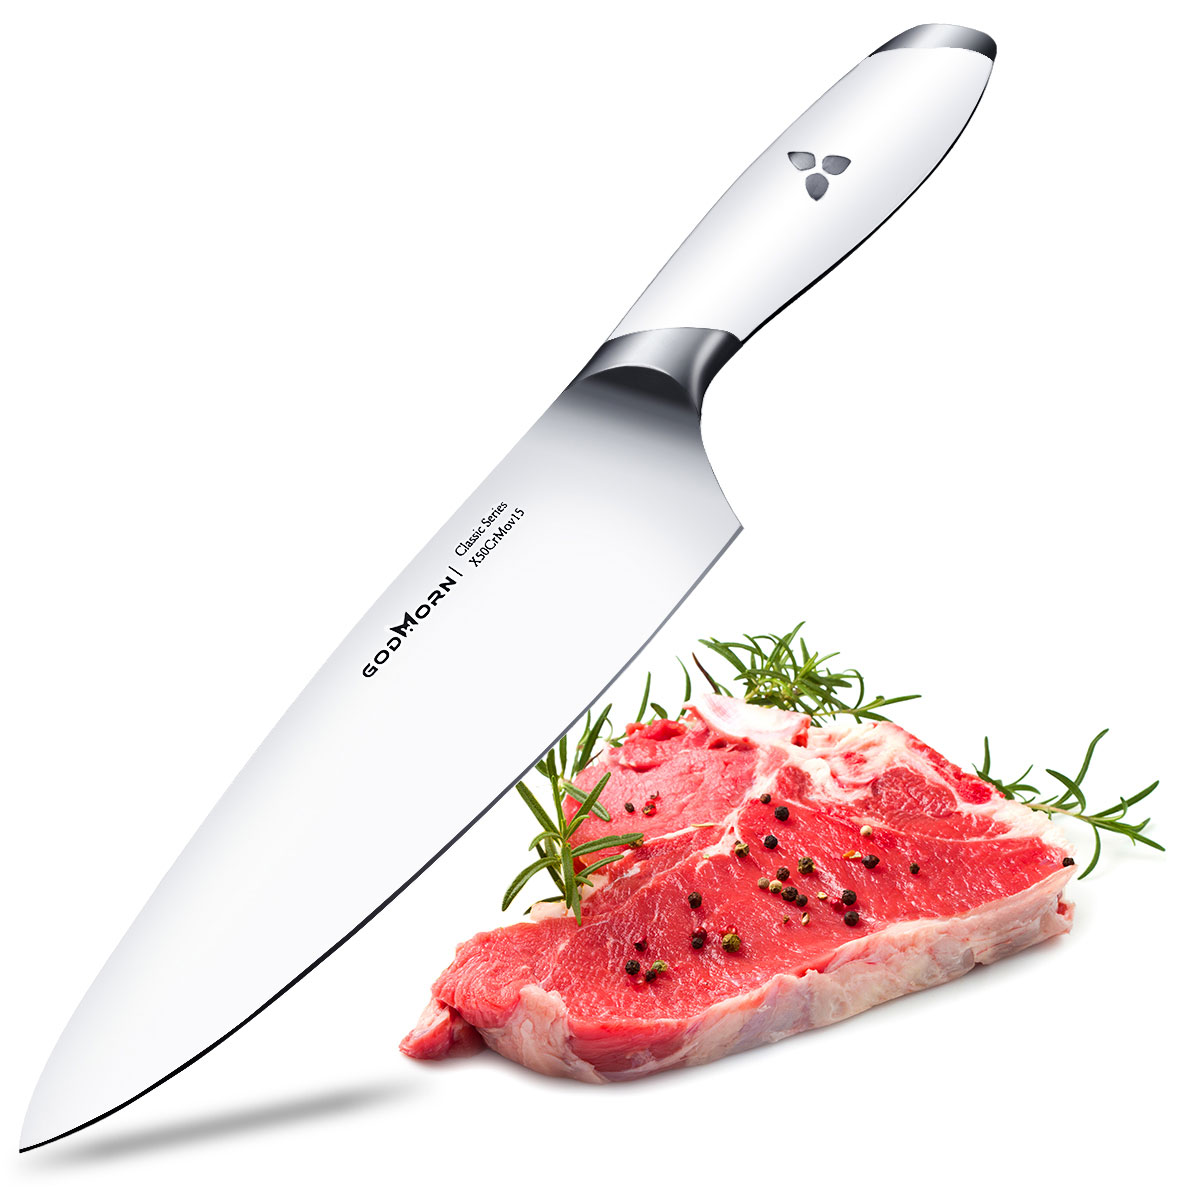 Godmorn Chef Knife 8 Inch German Stainless Steel Knife